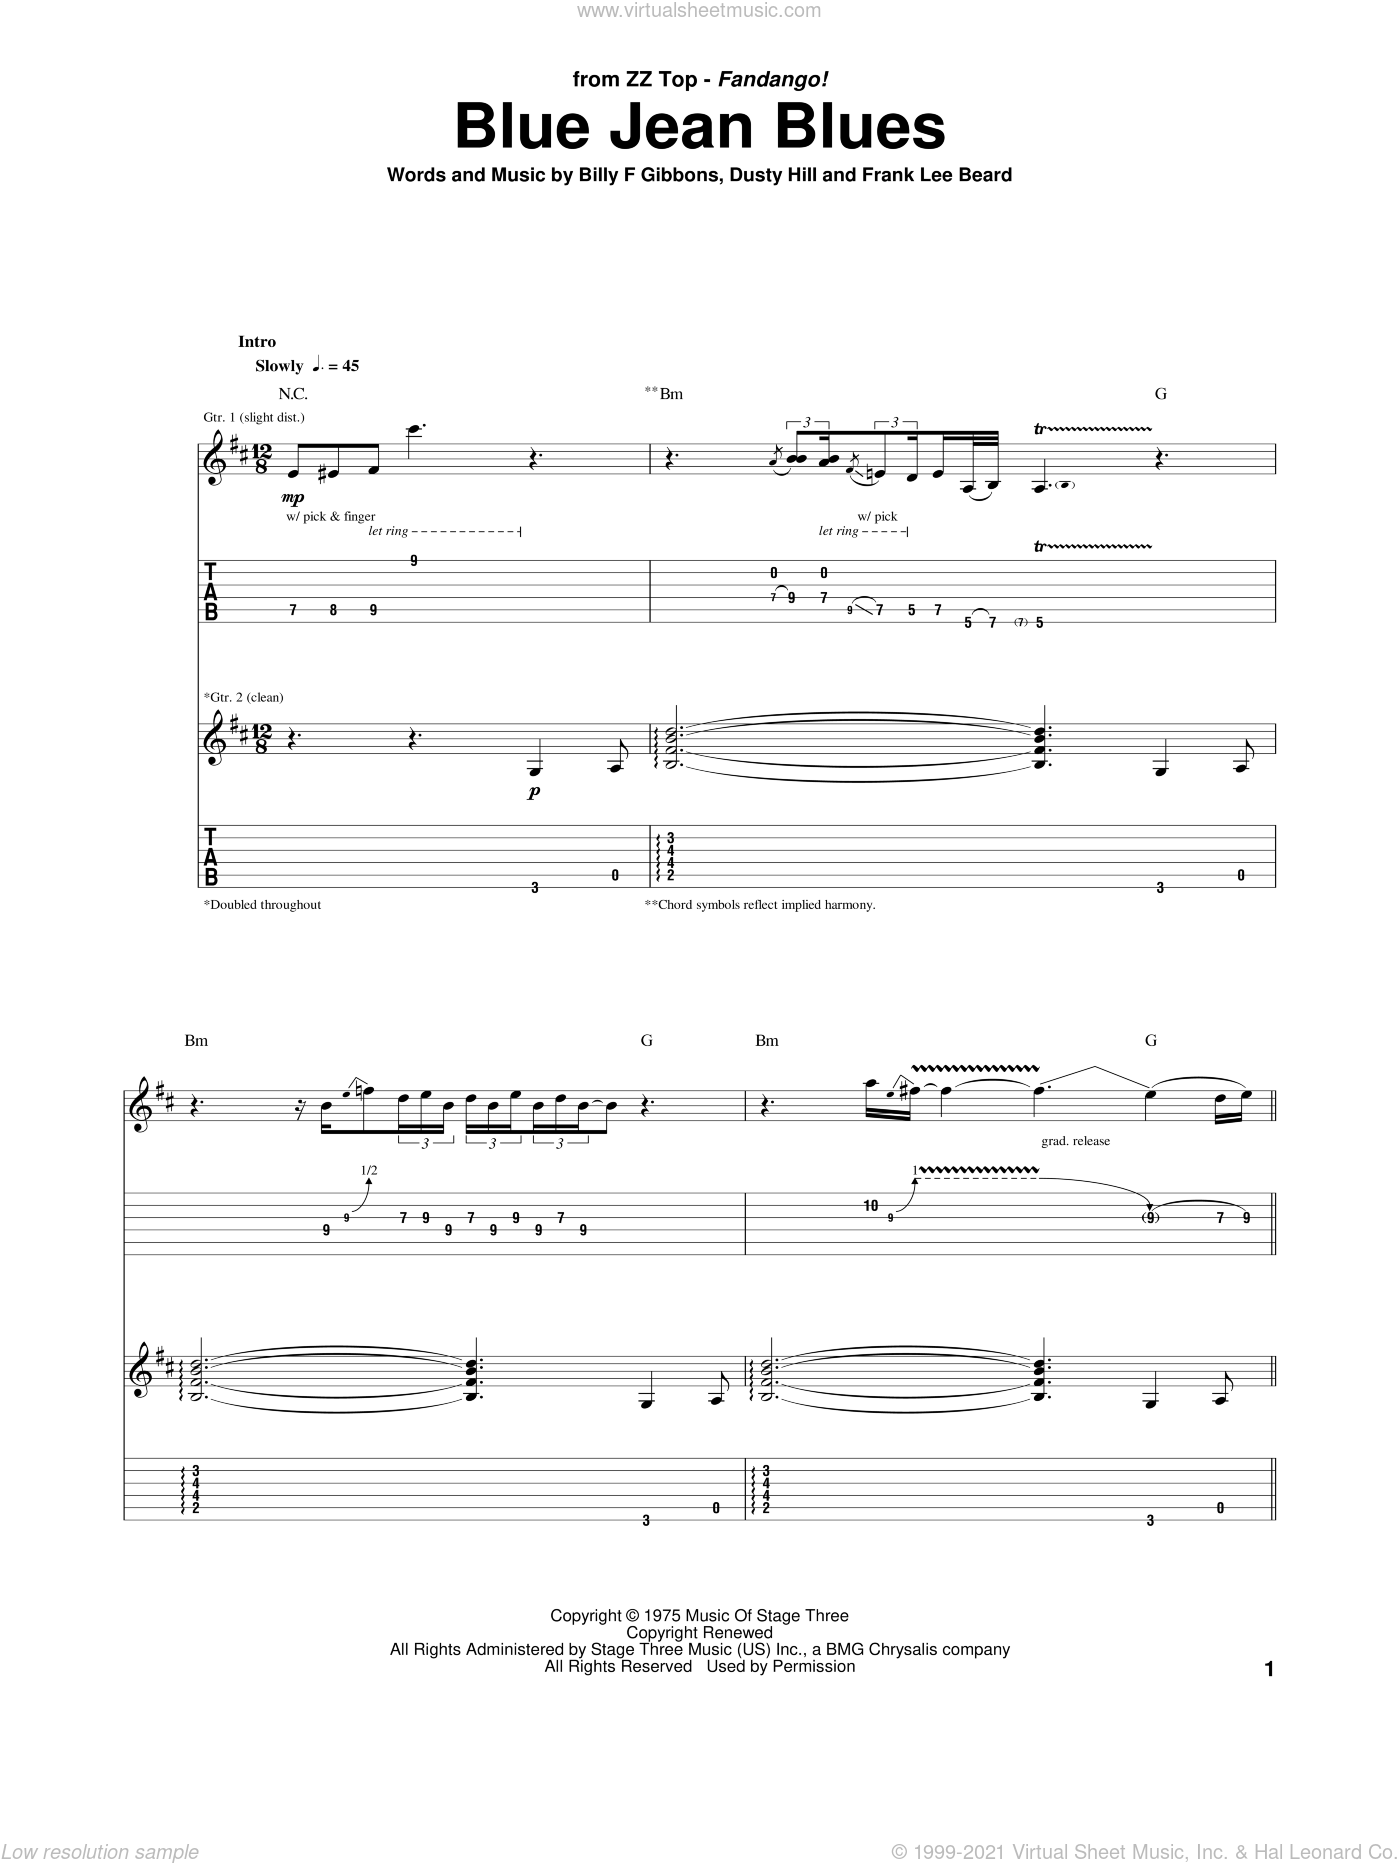 Blue Jean Blues sheet music for guitar (tablature) by Frank Beard